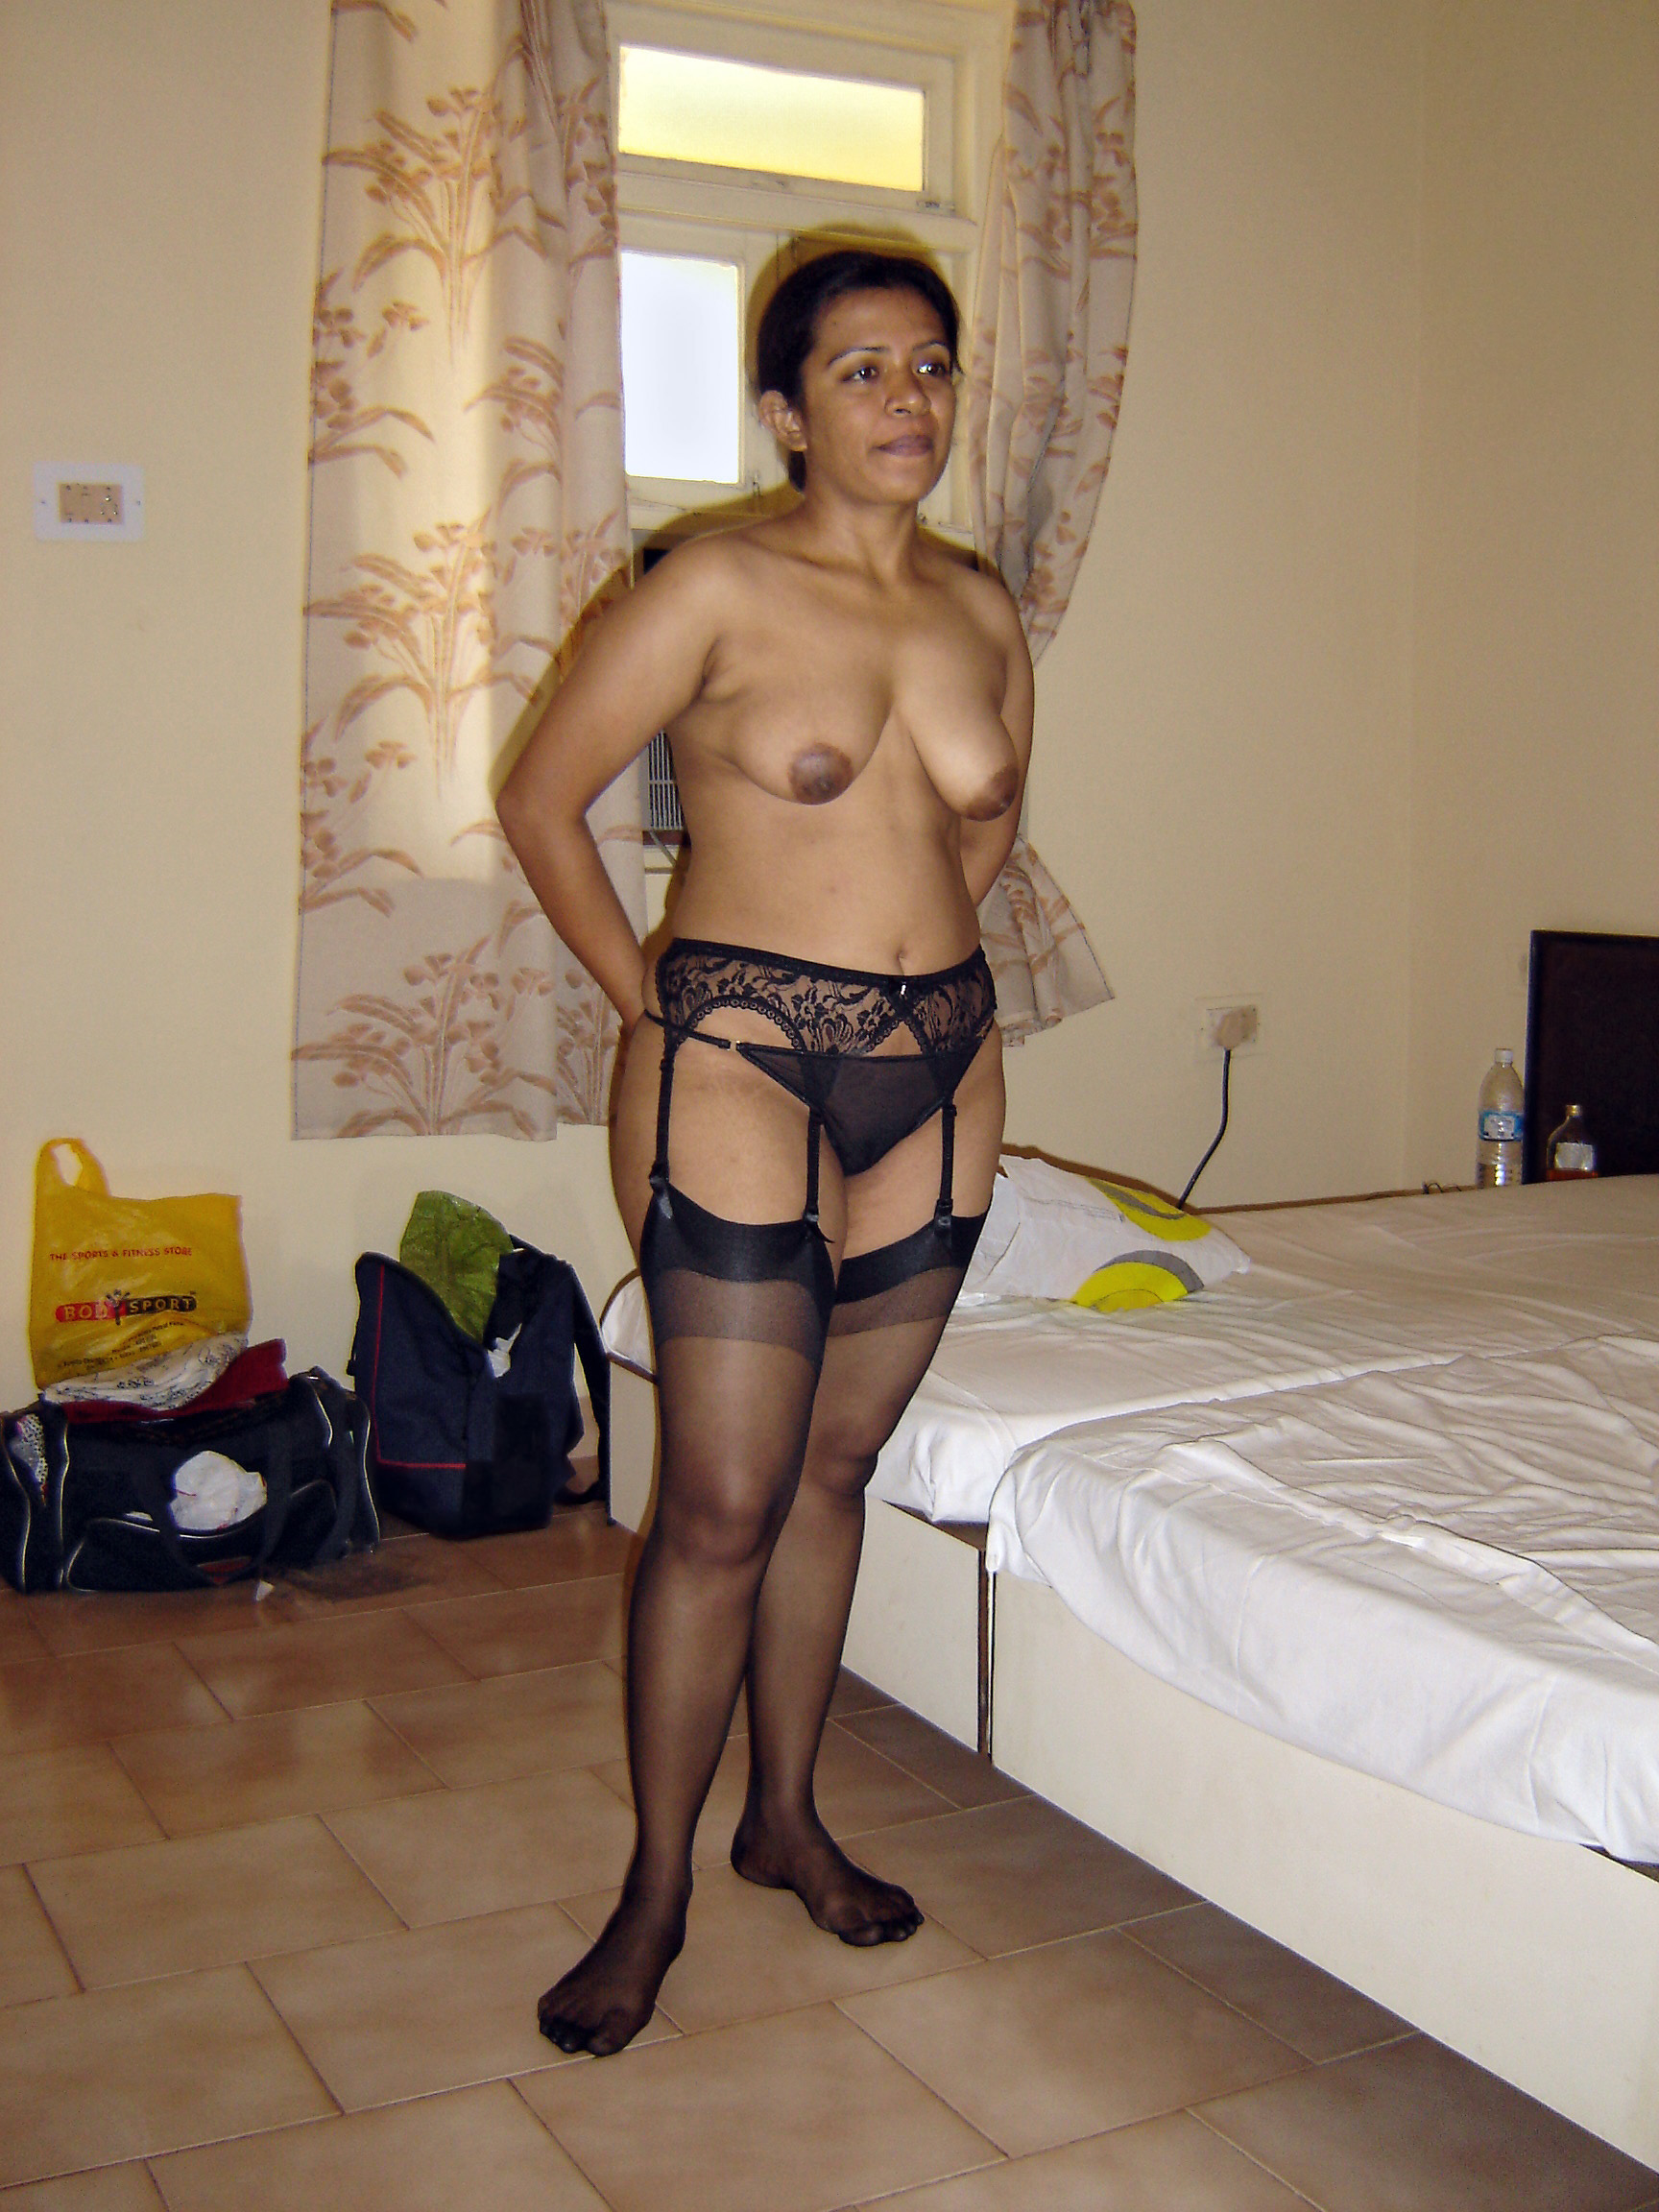 Remarkable, very amateur mature photo galleries matchless